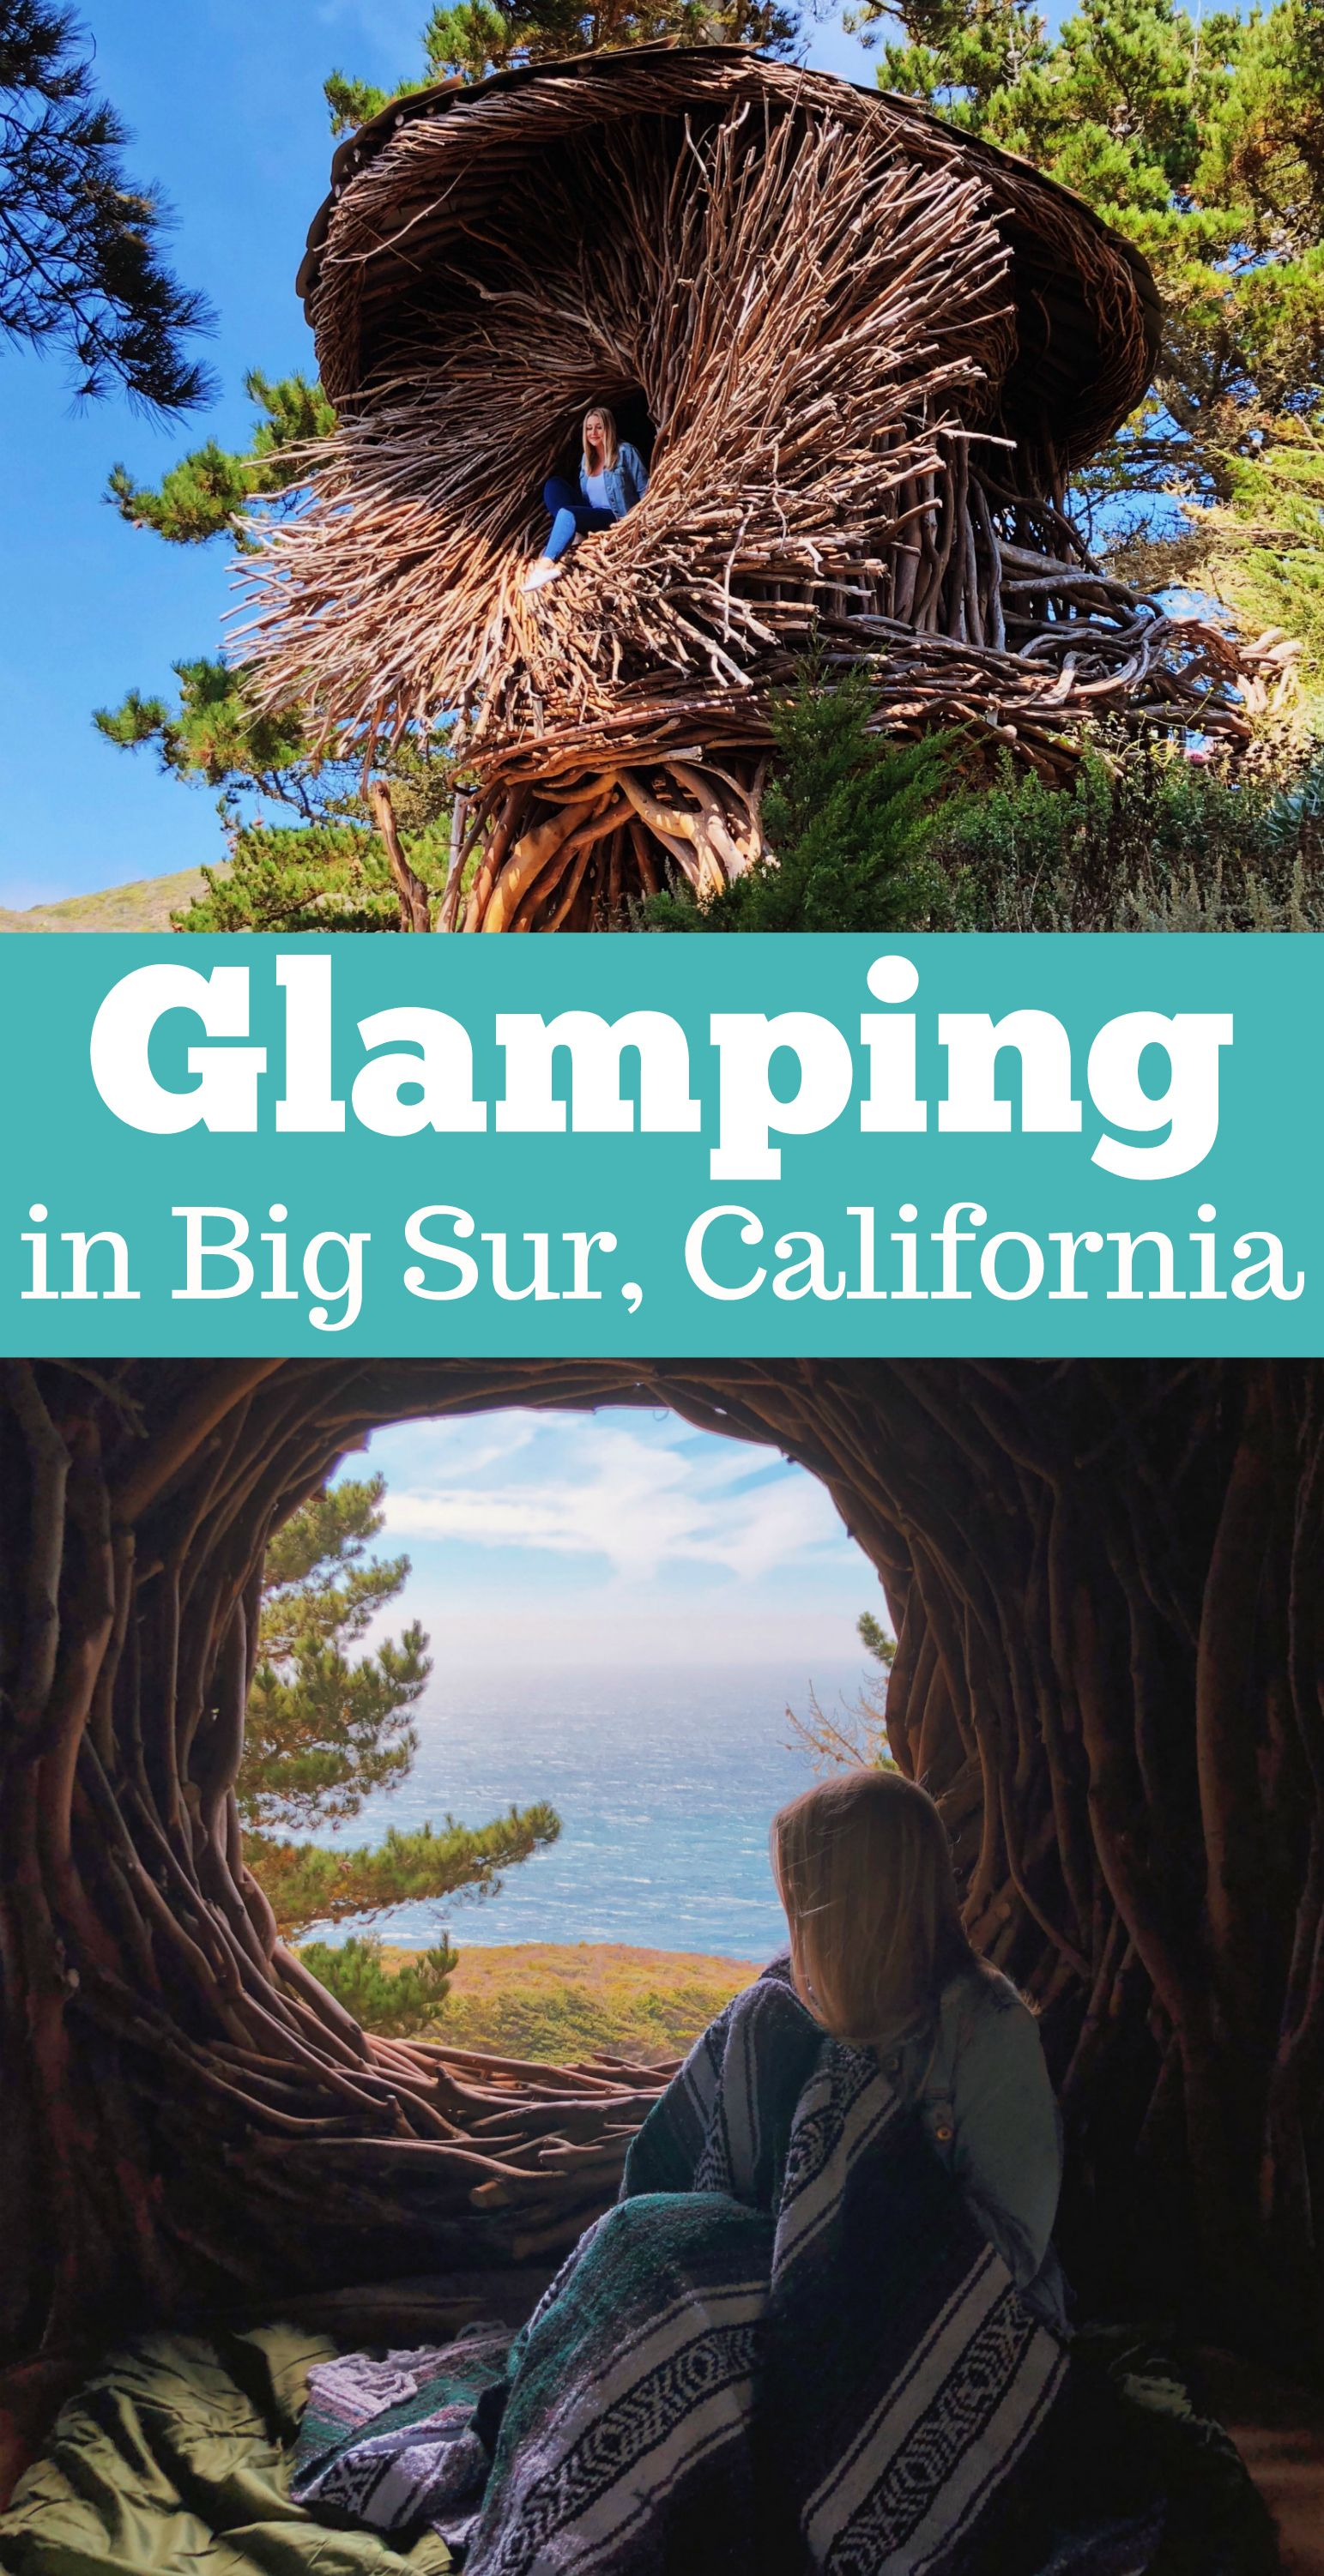 Glamping in Big Sur, CA: The Twig Hut at Treebones